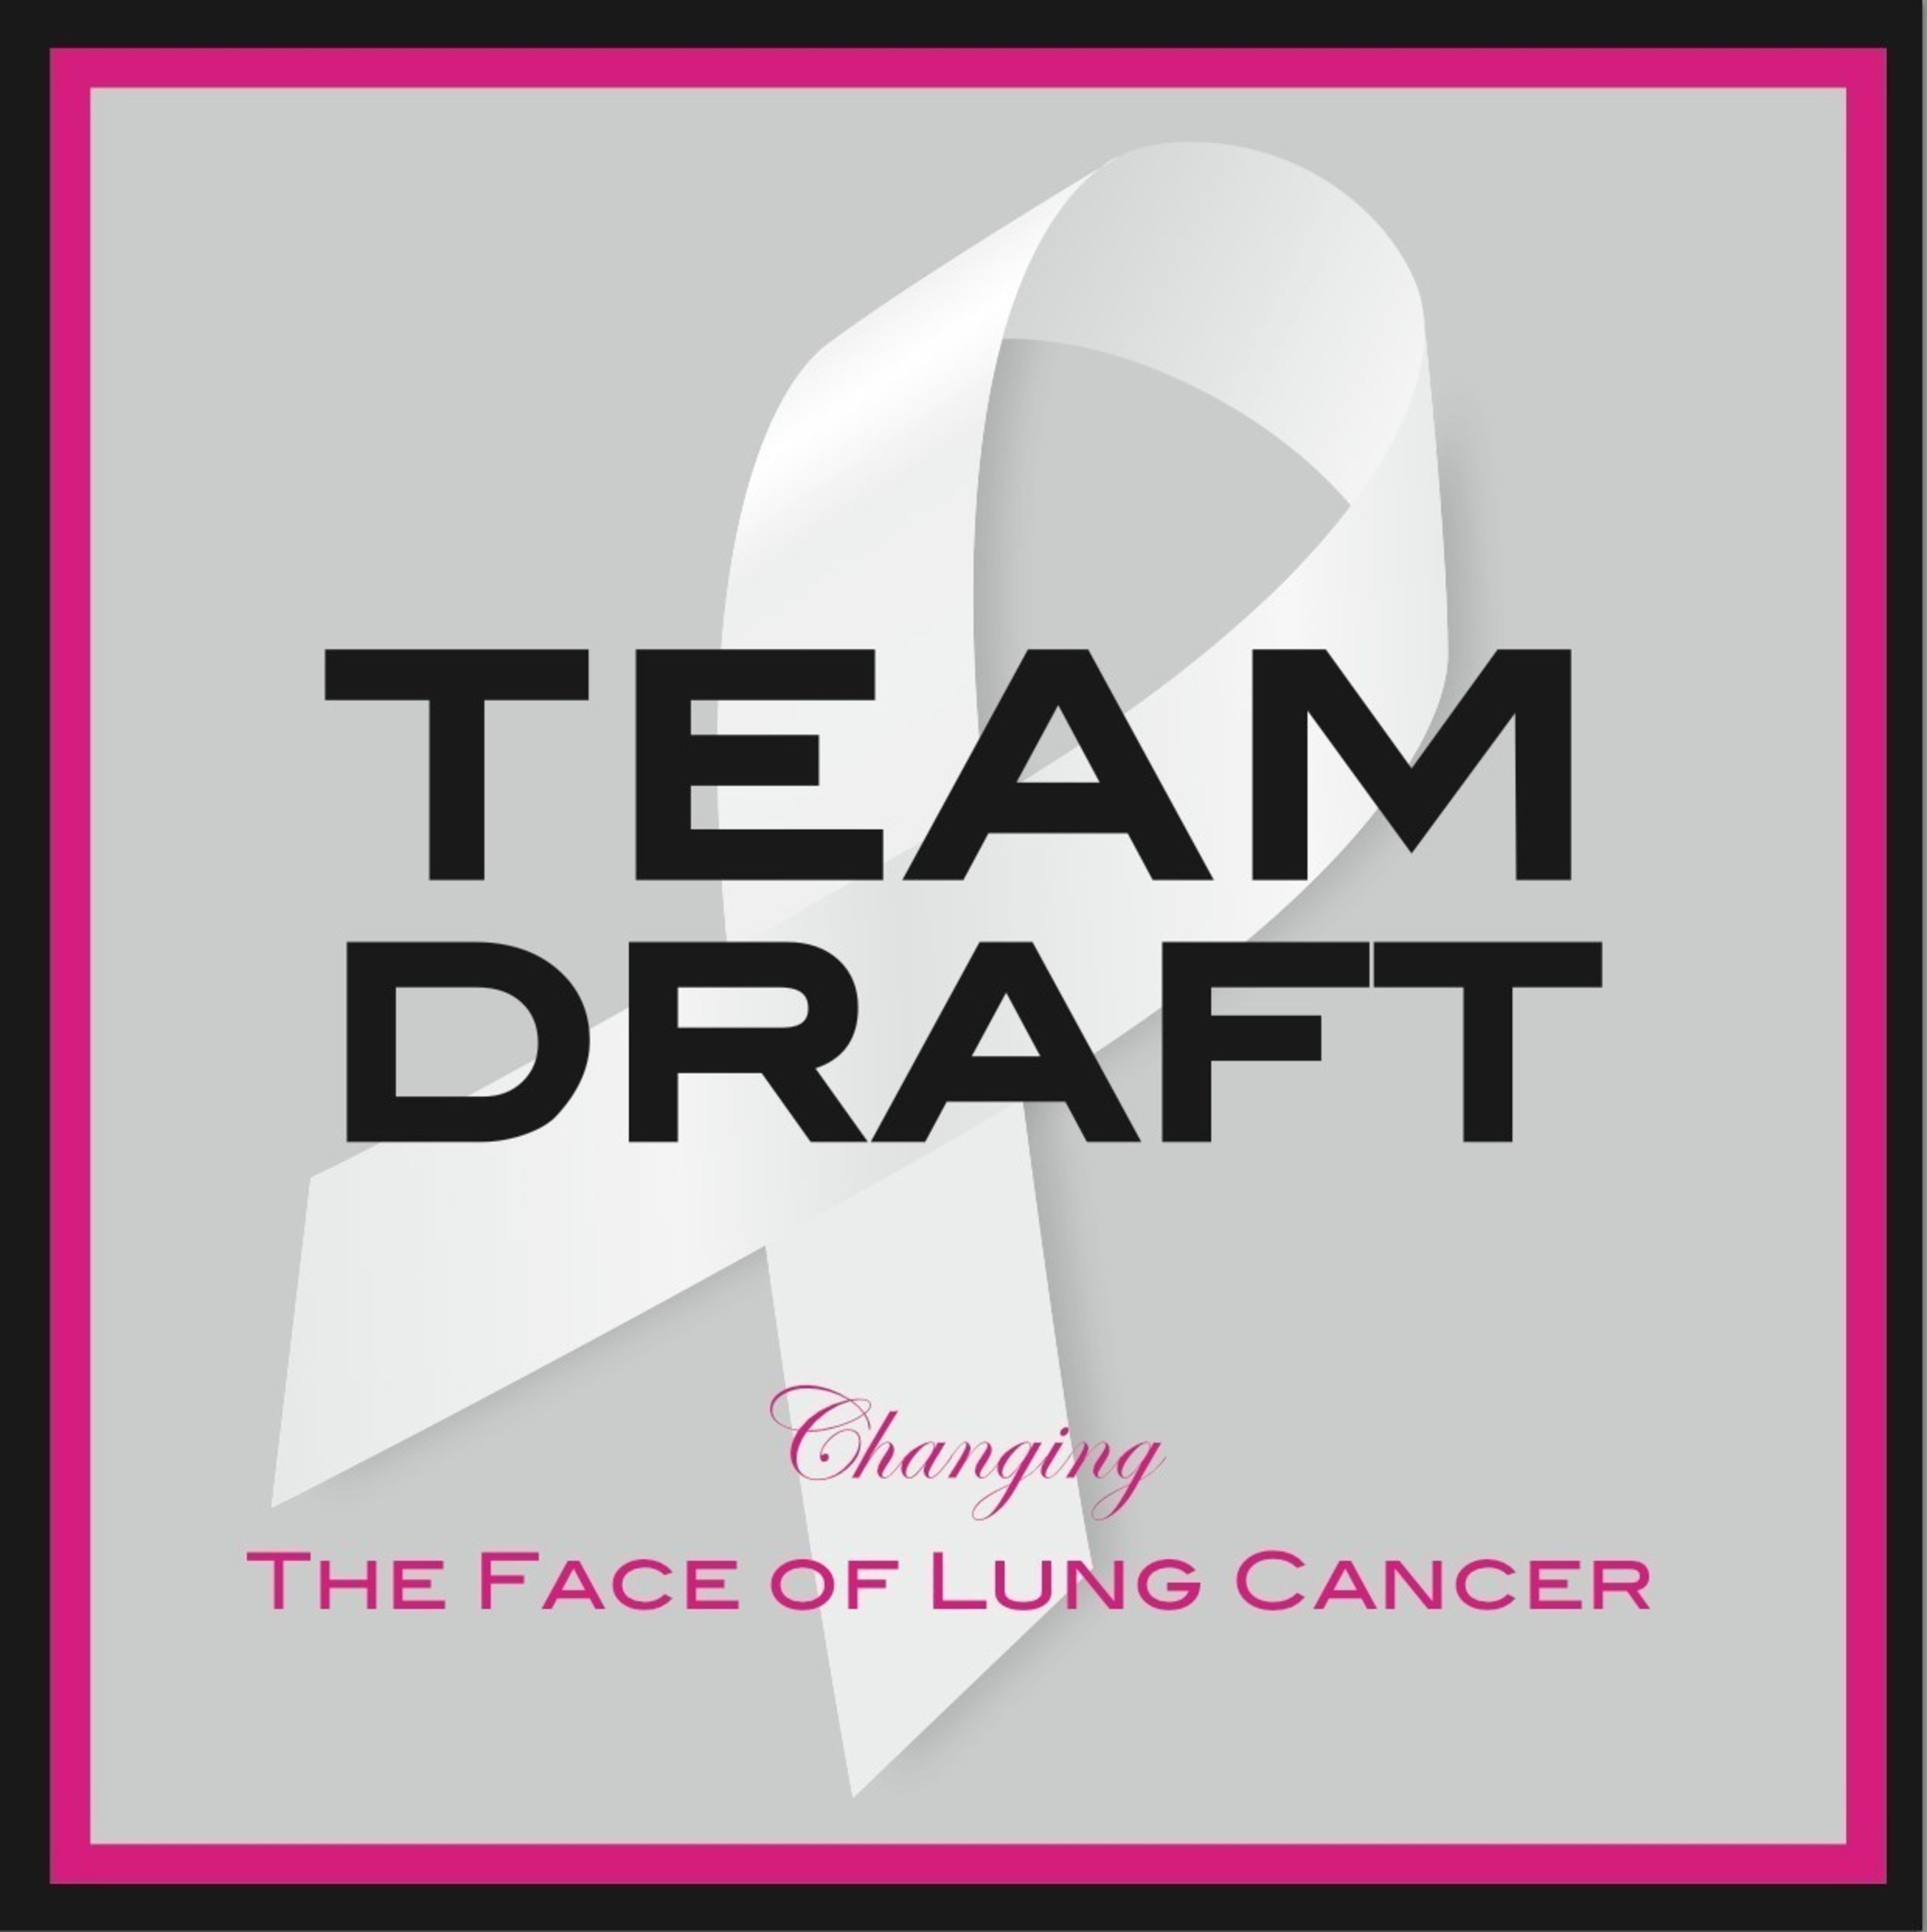 Team Draft Launches 2nd Annual Lung Cancer Survivors Super Bowl Challenge on SiriusXM NFL Radio